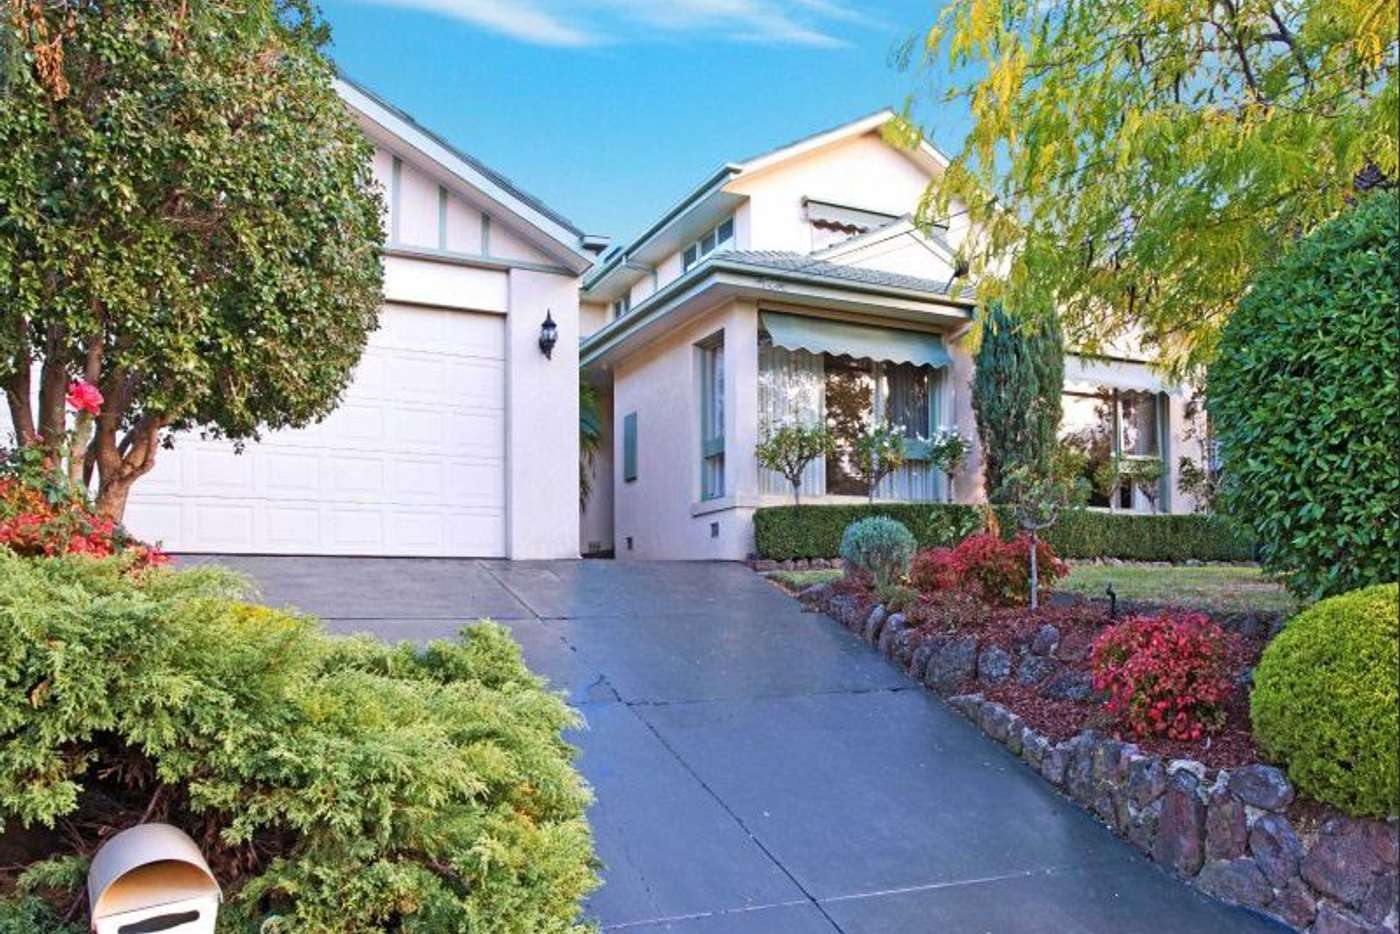 Main view of Homely house listing, 1 Alburnum Crescent, Templestowe Lower VIC 3107